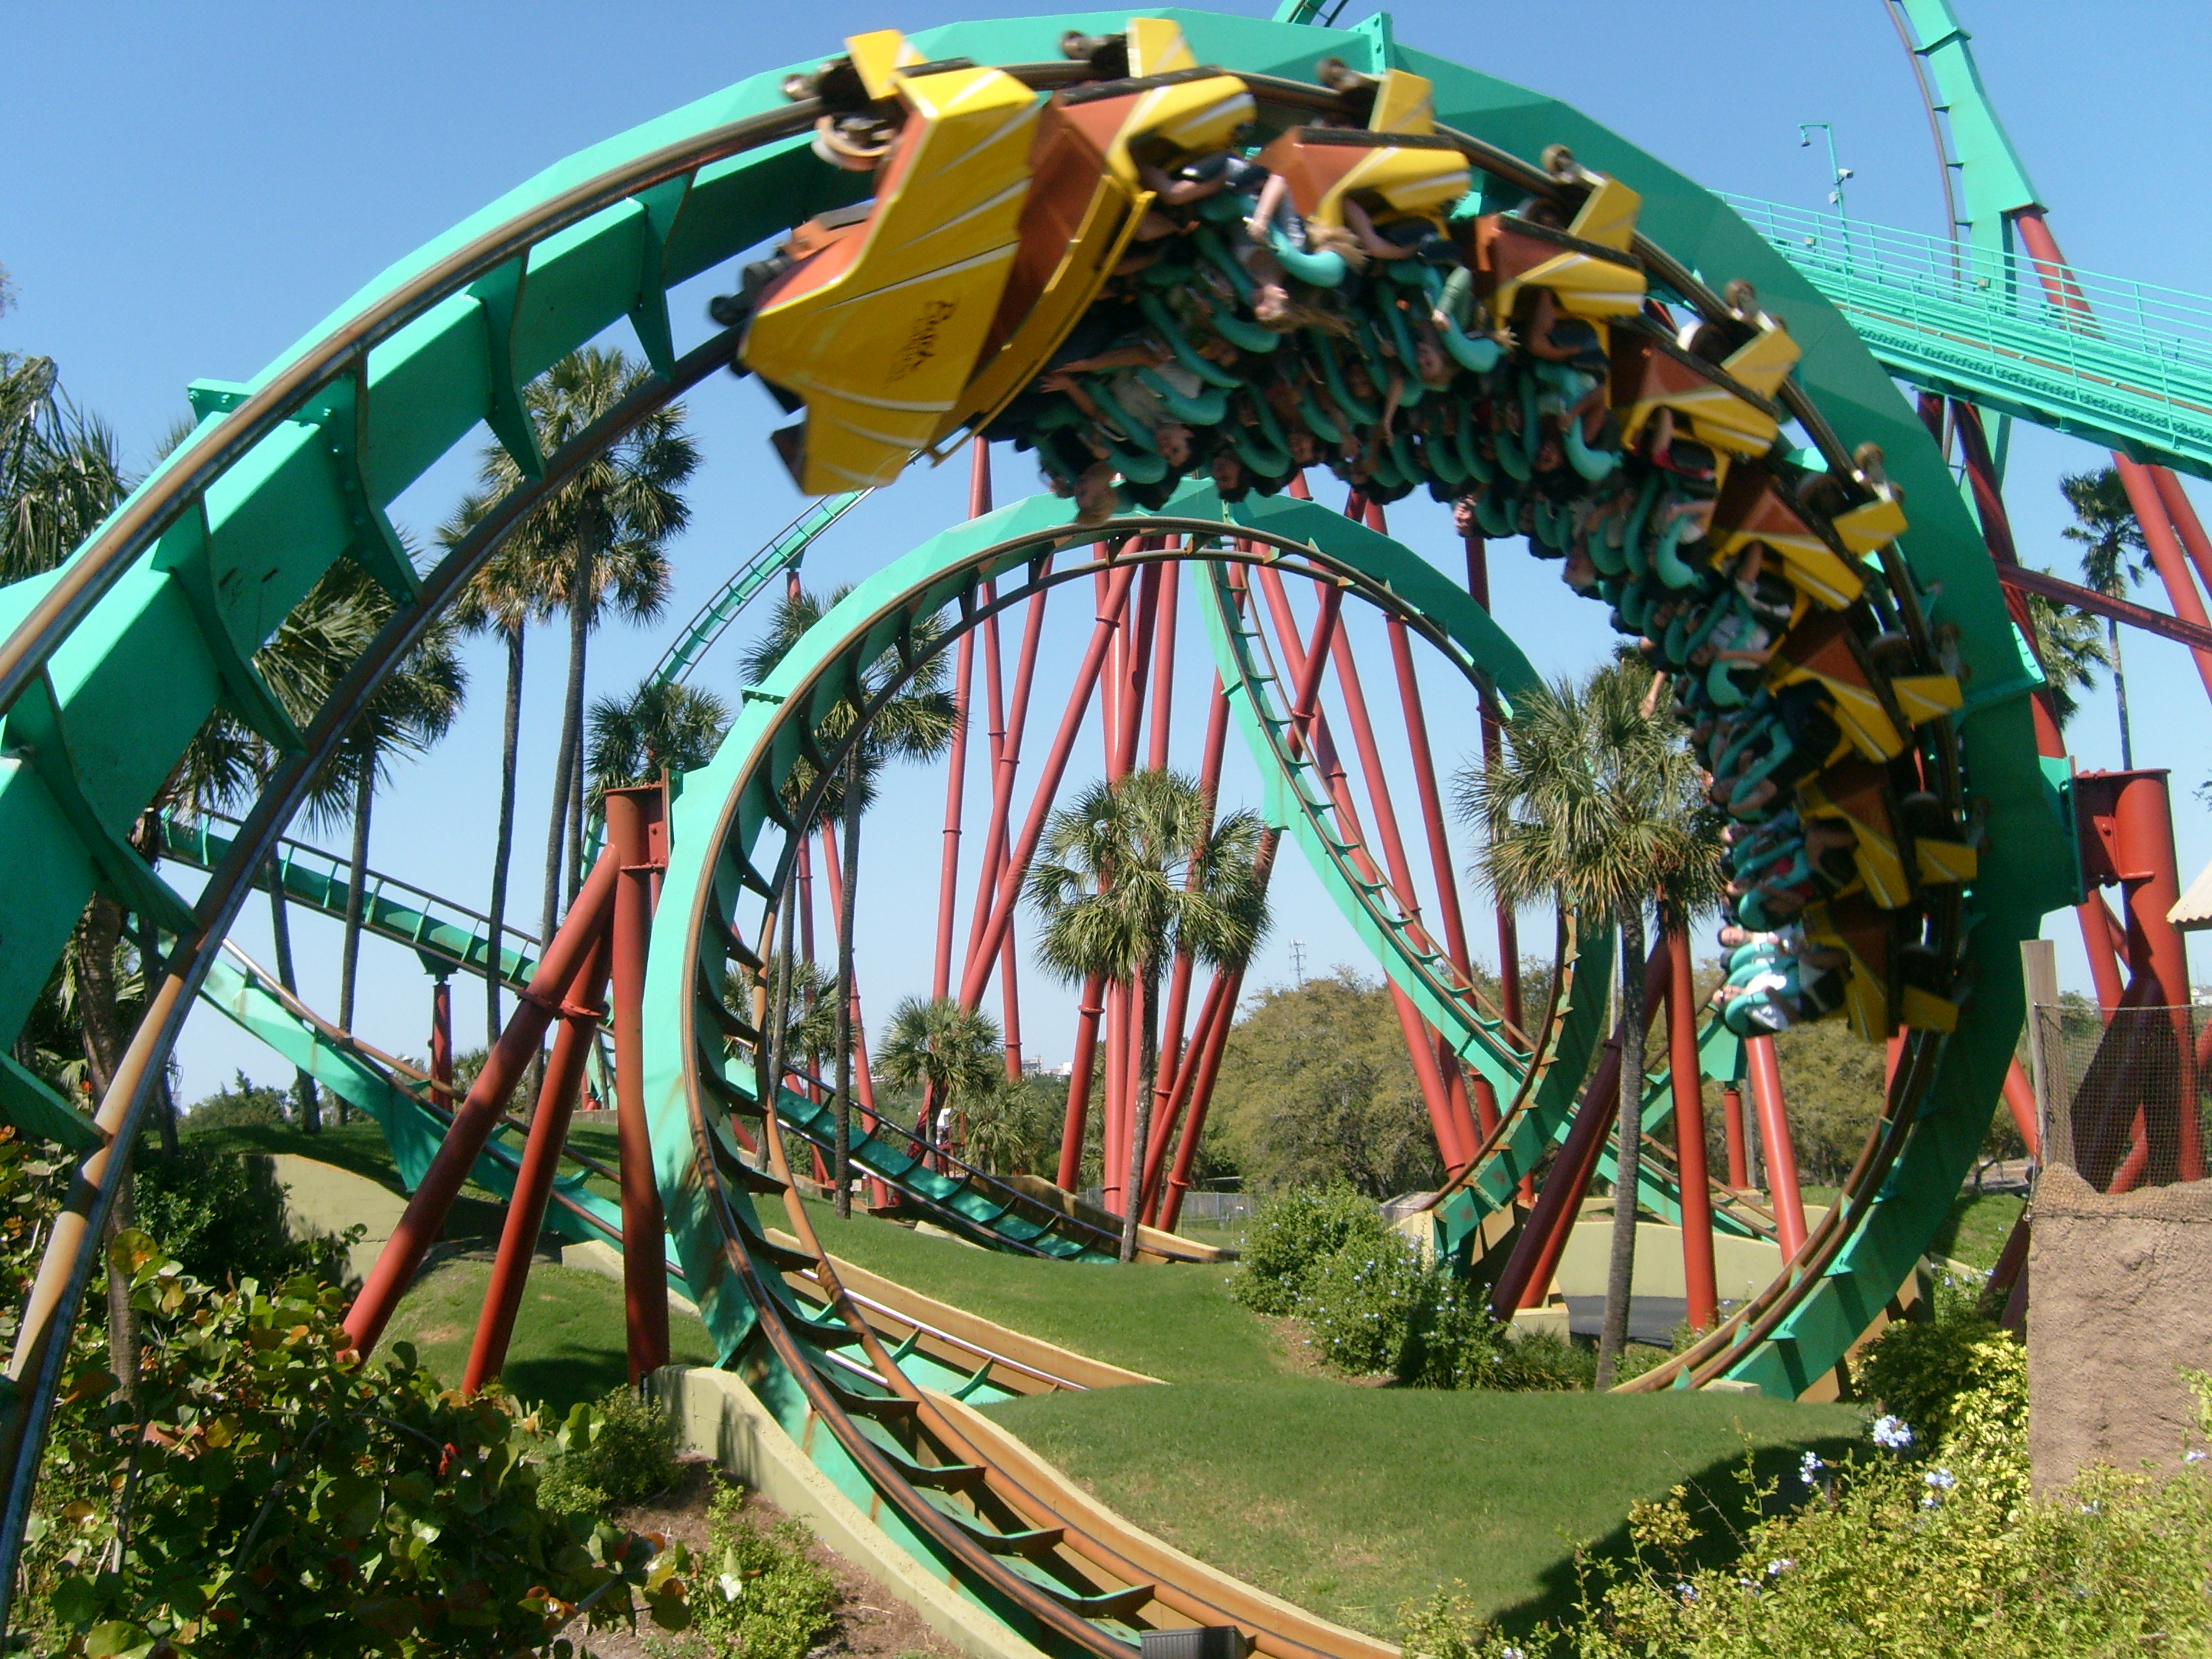 Roller coasters busch gardens it is what it is - Roller coasters at busch gardens ...